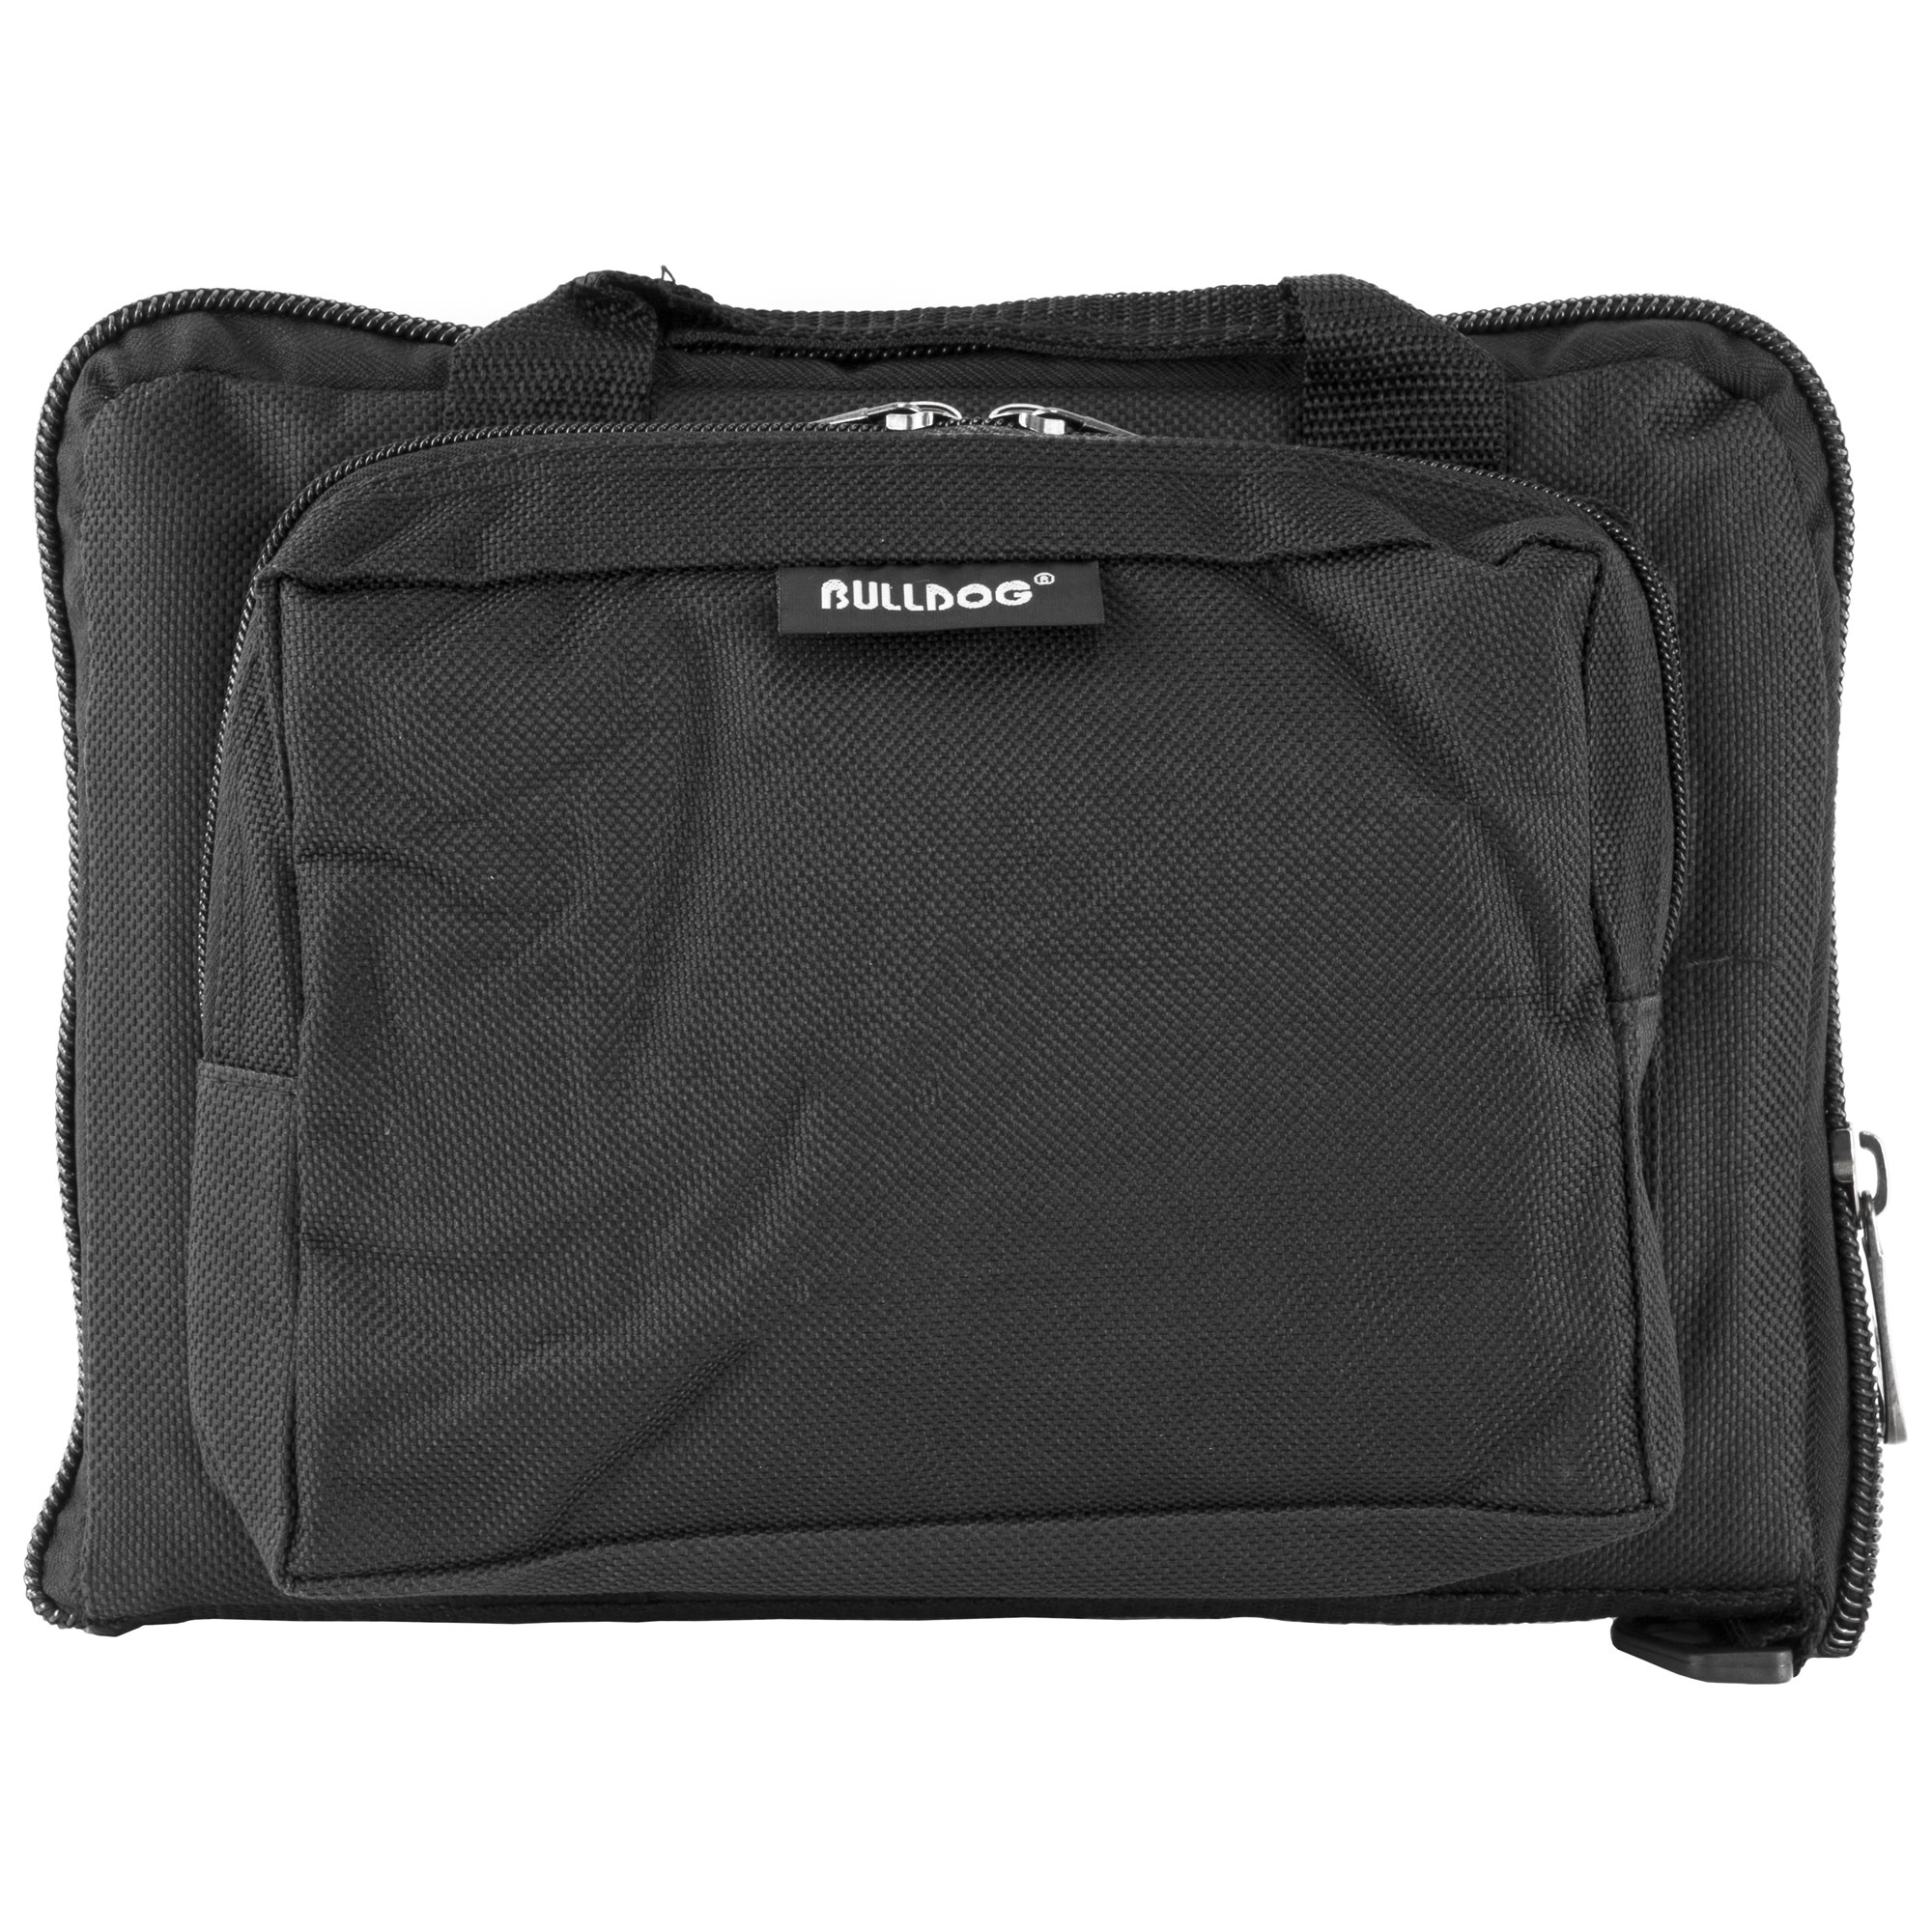 Bulldog Bulldog Mini Range Bag Black